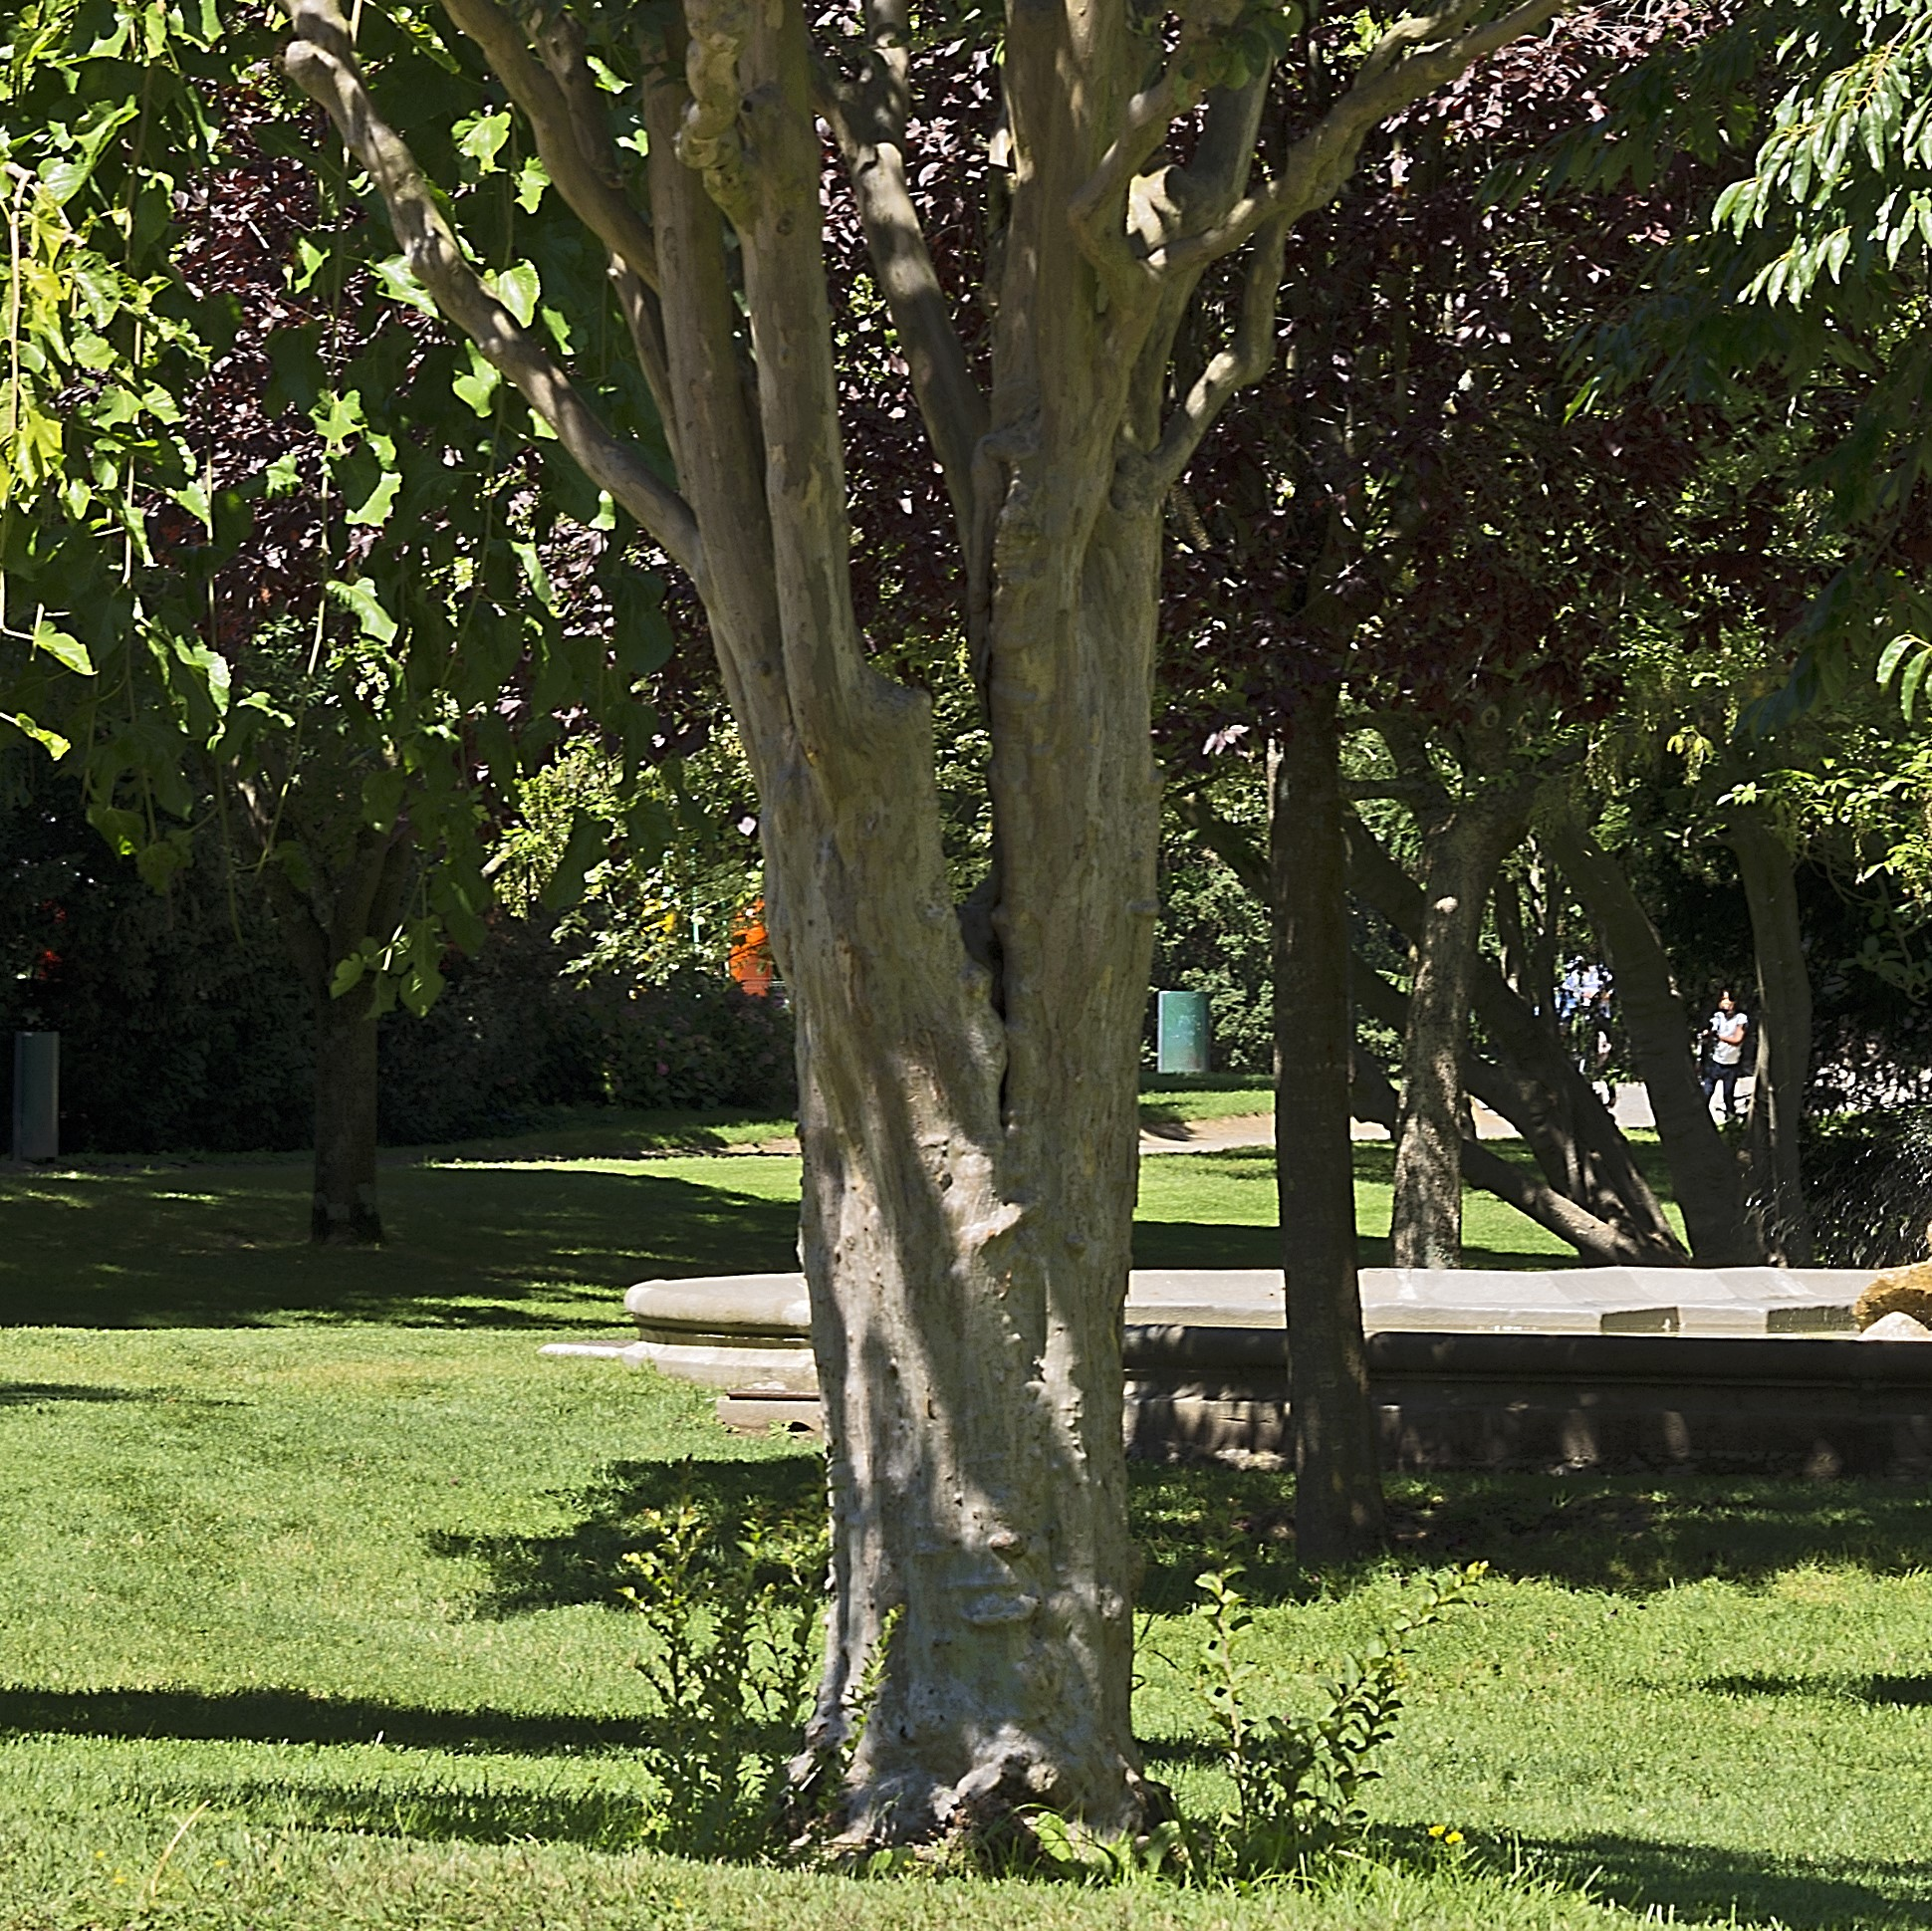 A tree with this large of a trunk would require the shoots to be cut off, but most smaller trees can afford the addition of these newer sprouts.